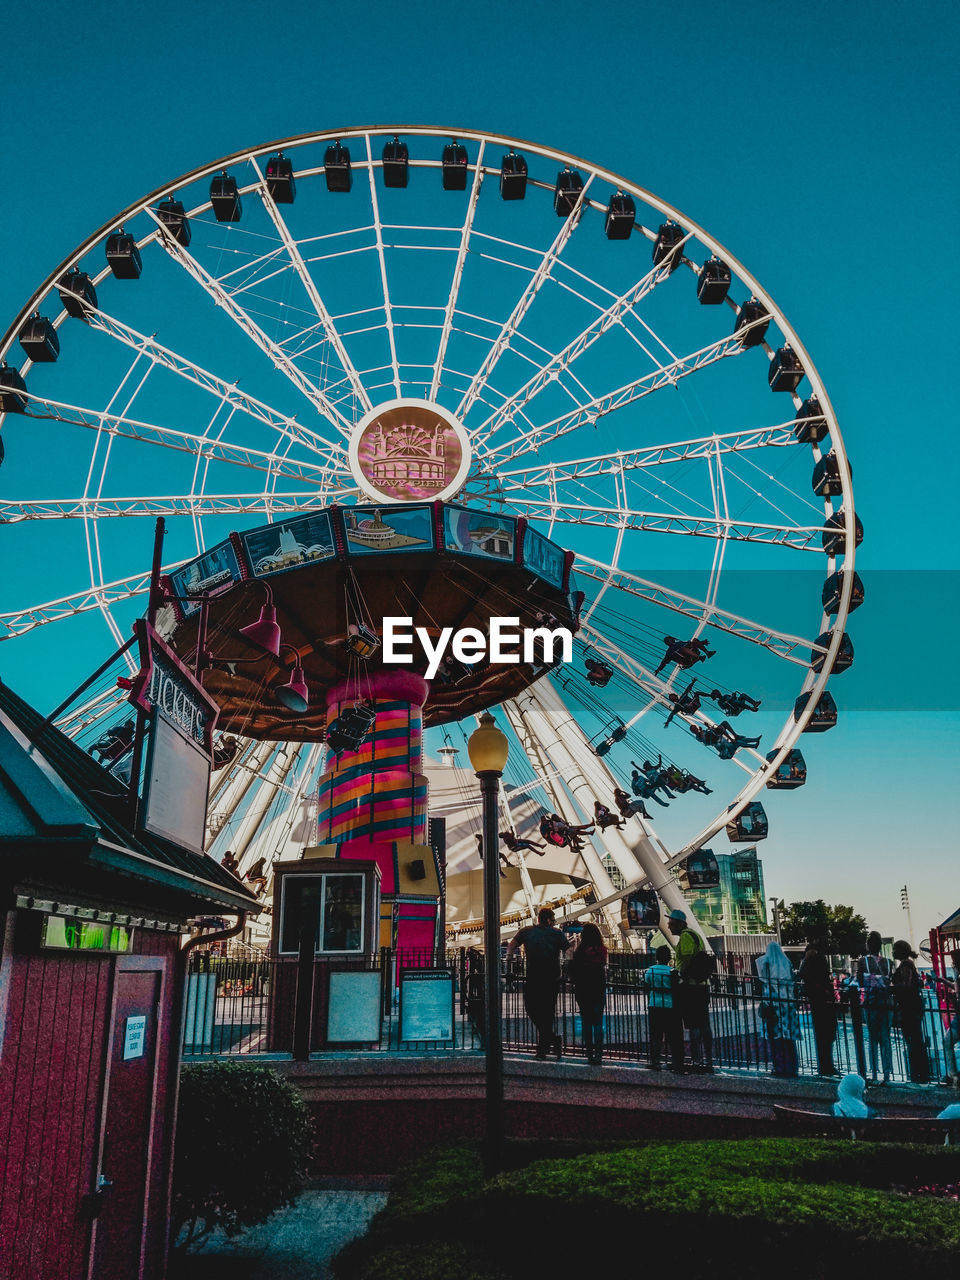 amusement park, arts culture and entertainment, amusement park ride, sky, ferris wheel, built structure, architecture, leisure activity, nature, day, clear sky, low angle view, group of people, real people, outdoors, blue, shape, spinning, carnival, large group of people, fairground